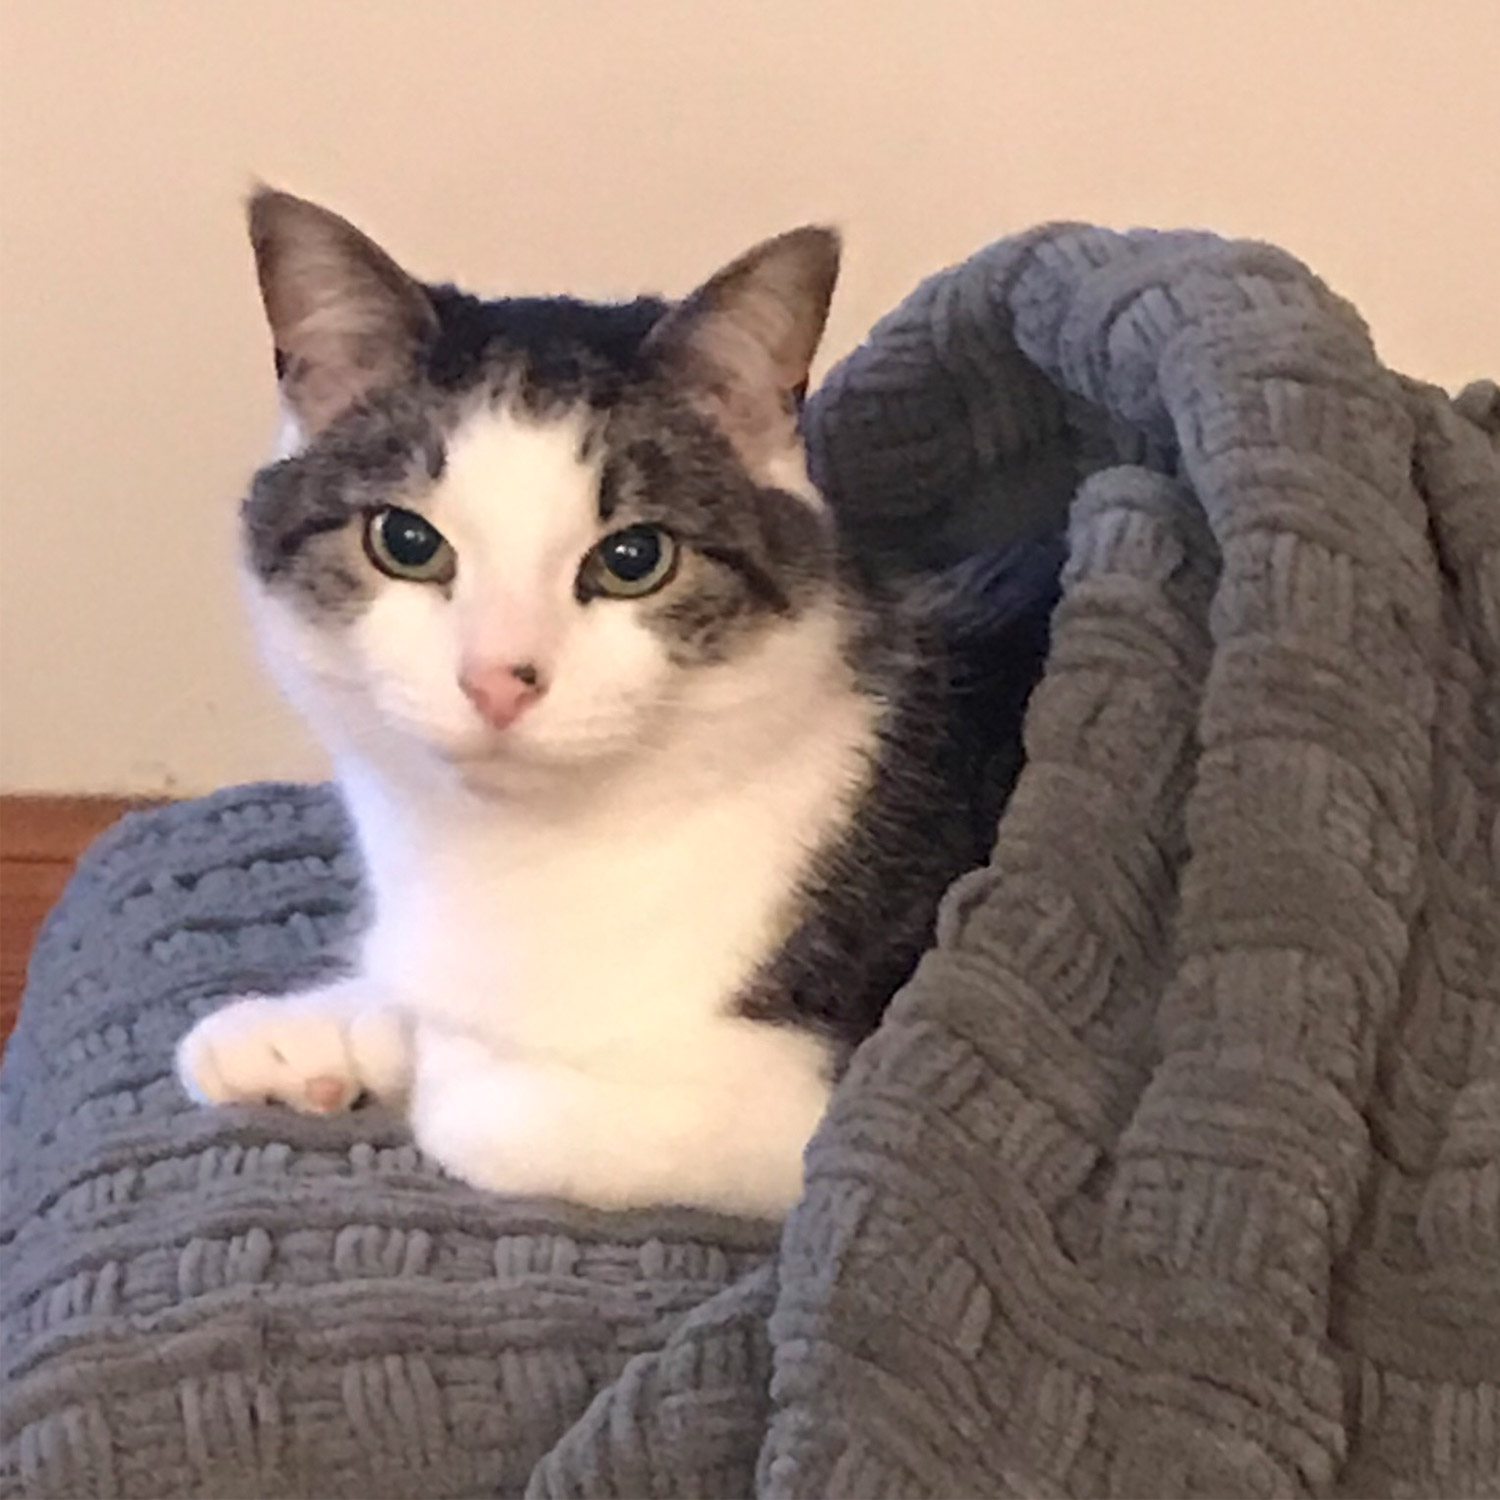 Fran B. in Manchester, NH sent a picture of Noah,her seven-year-old grey and white cat. Fran says he loves to snuggleand is shown snuggled into one of those new pita pocket style beds.